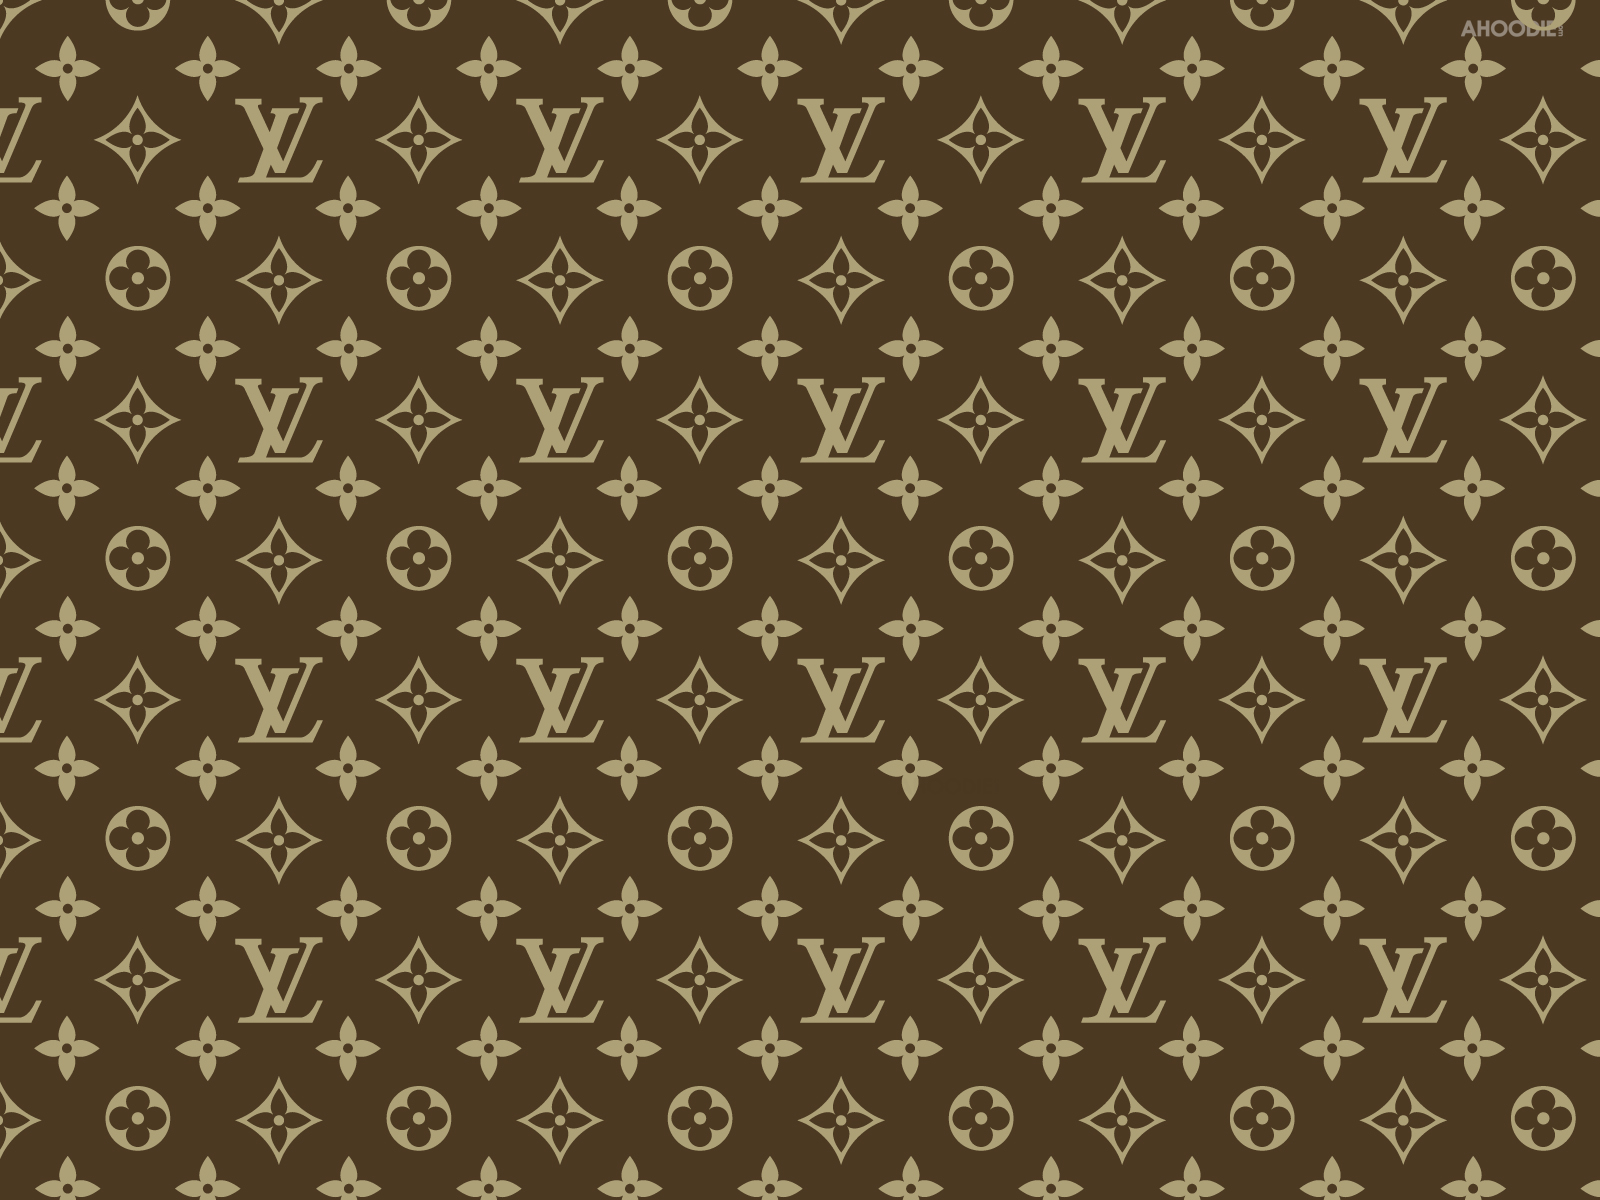 ... Louis Vuitton Wallpapers ...